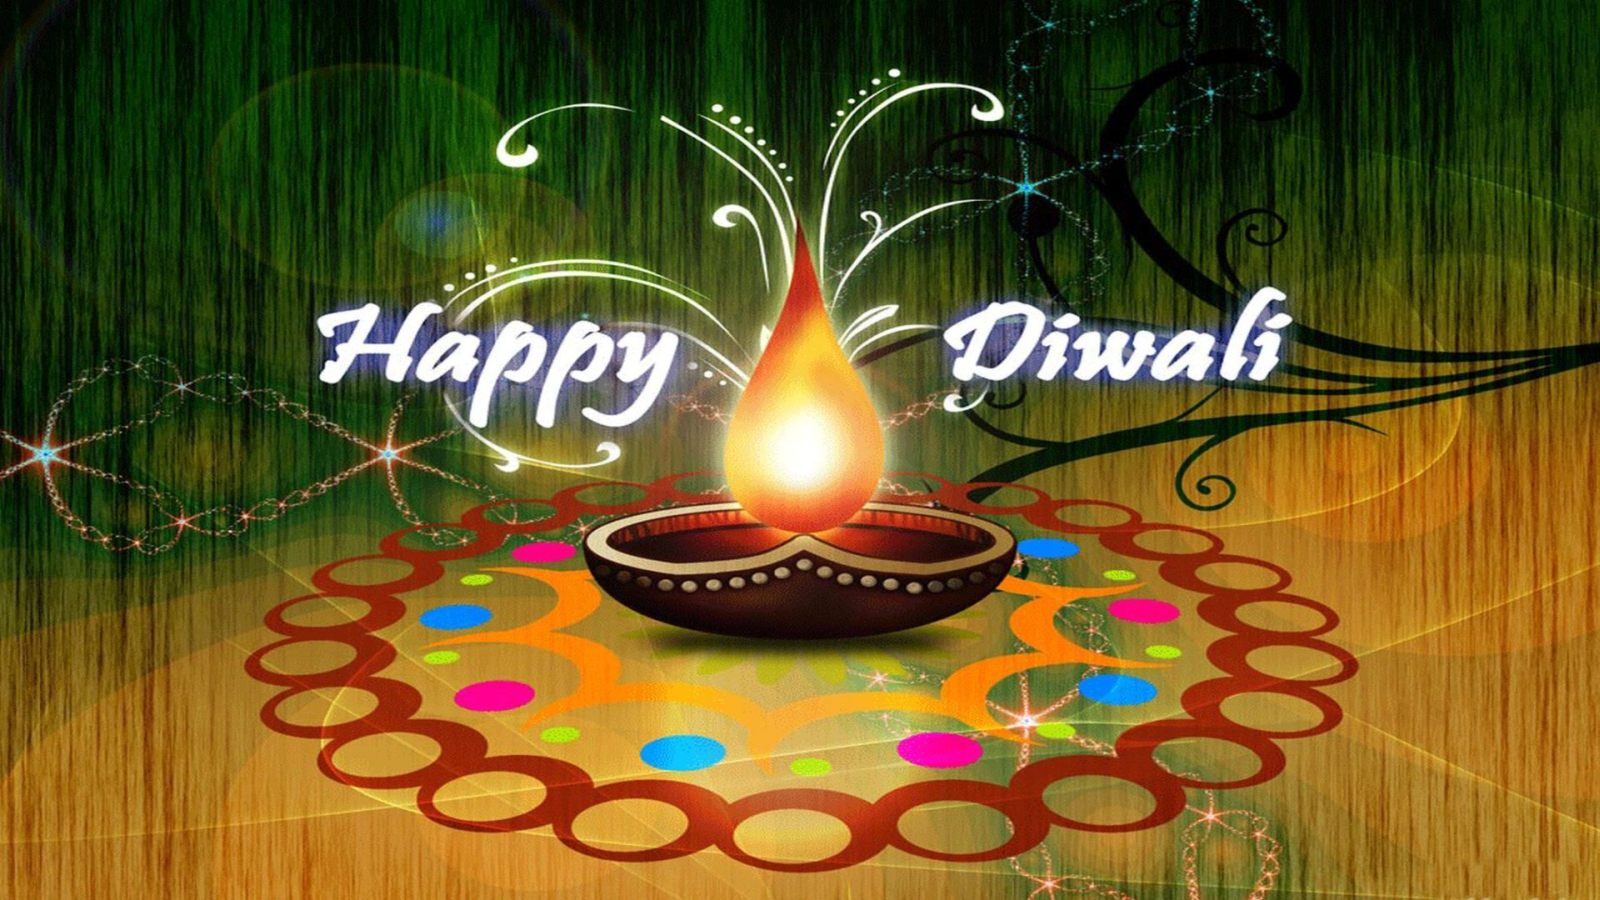 Happy Deepavali Wishes Photo For WhatsApp & Facebook